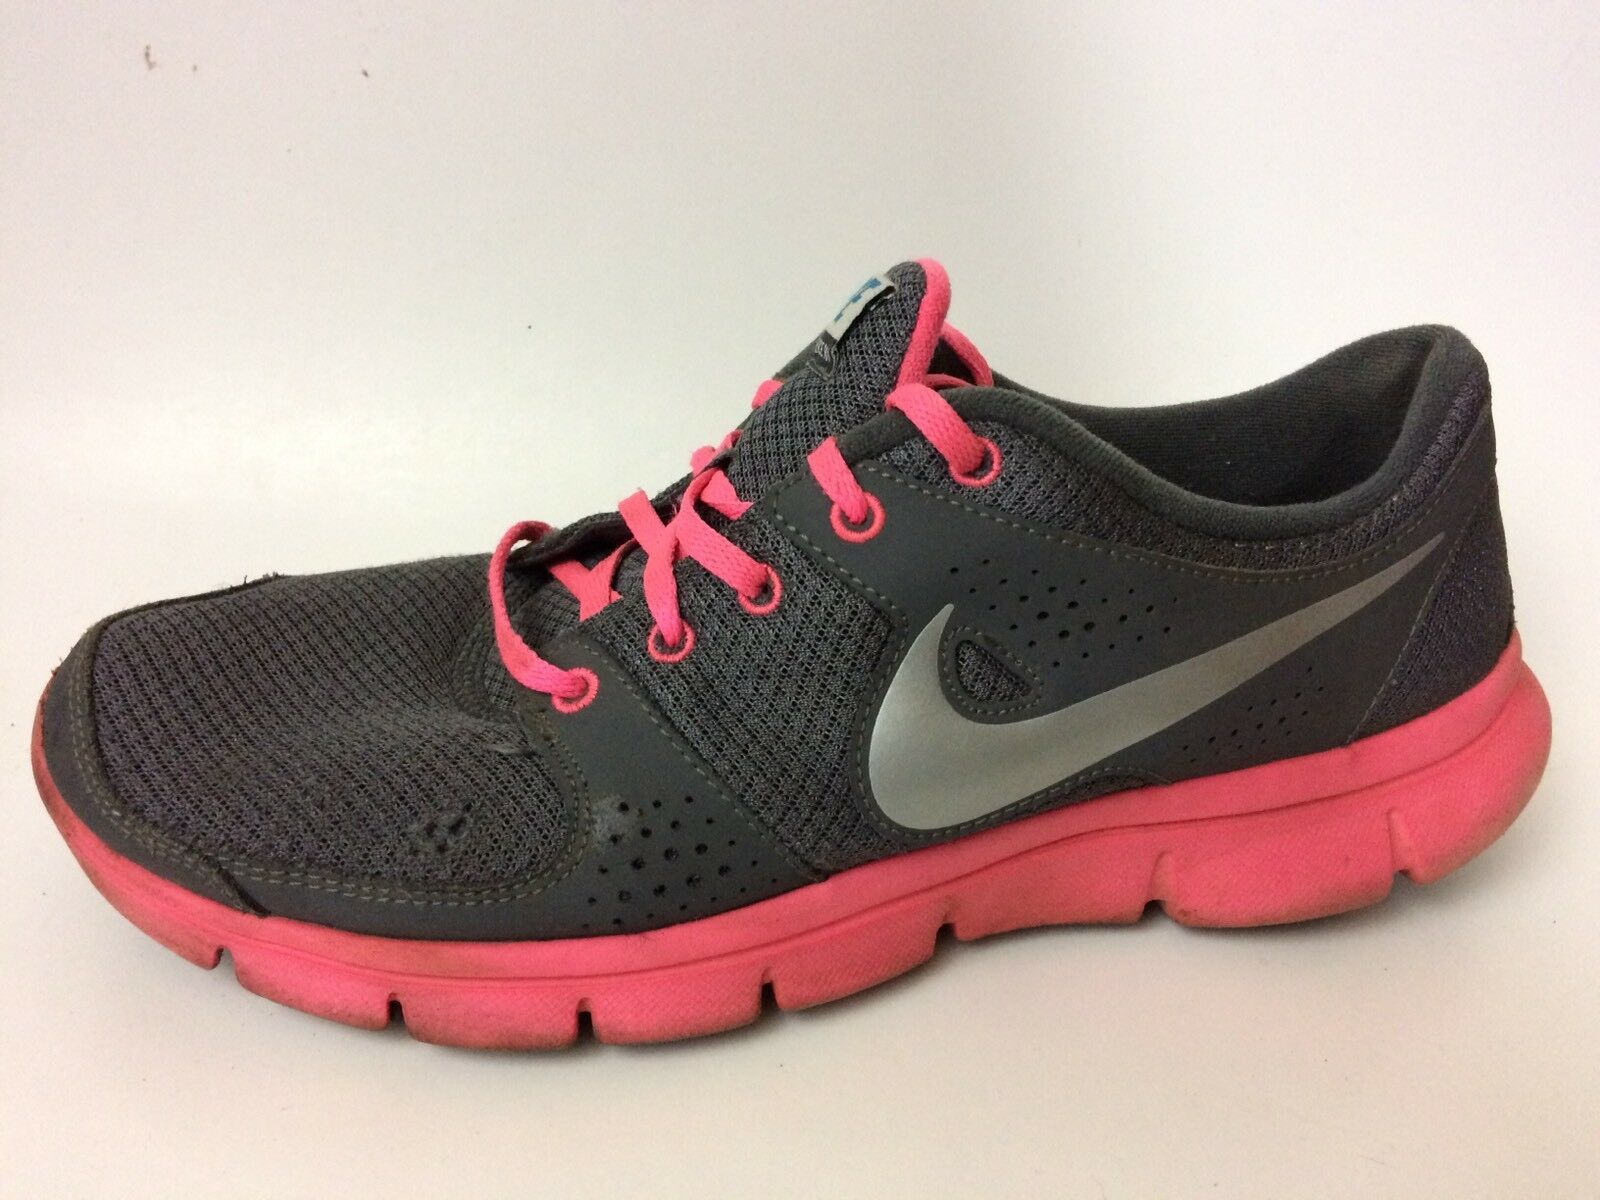 NIKE FLEX Experience RN Womens 11 M Running Athletic Shoes 525754-007 Pink Gray